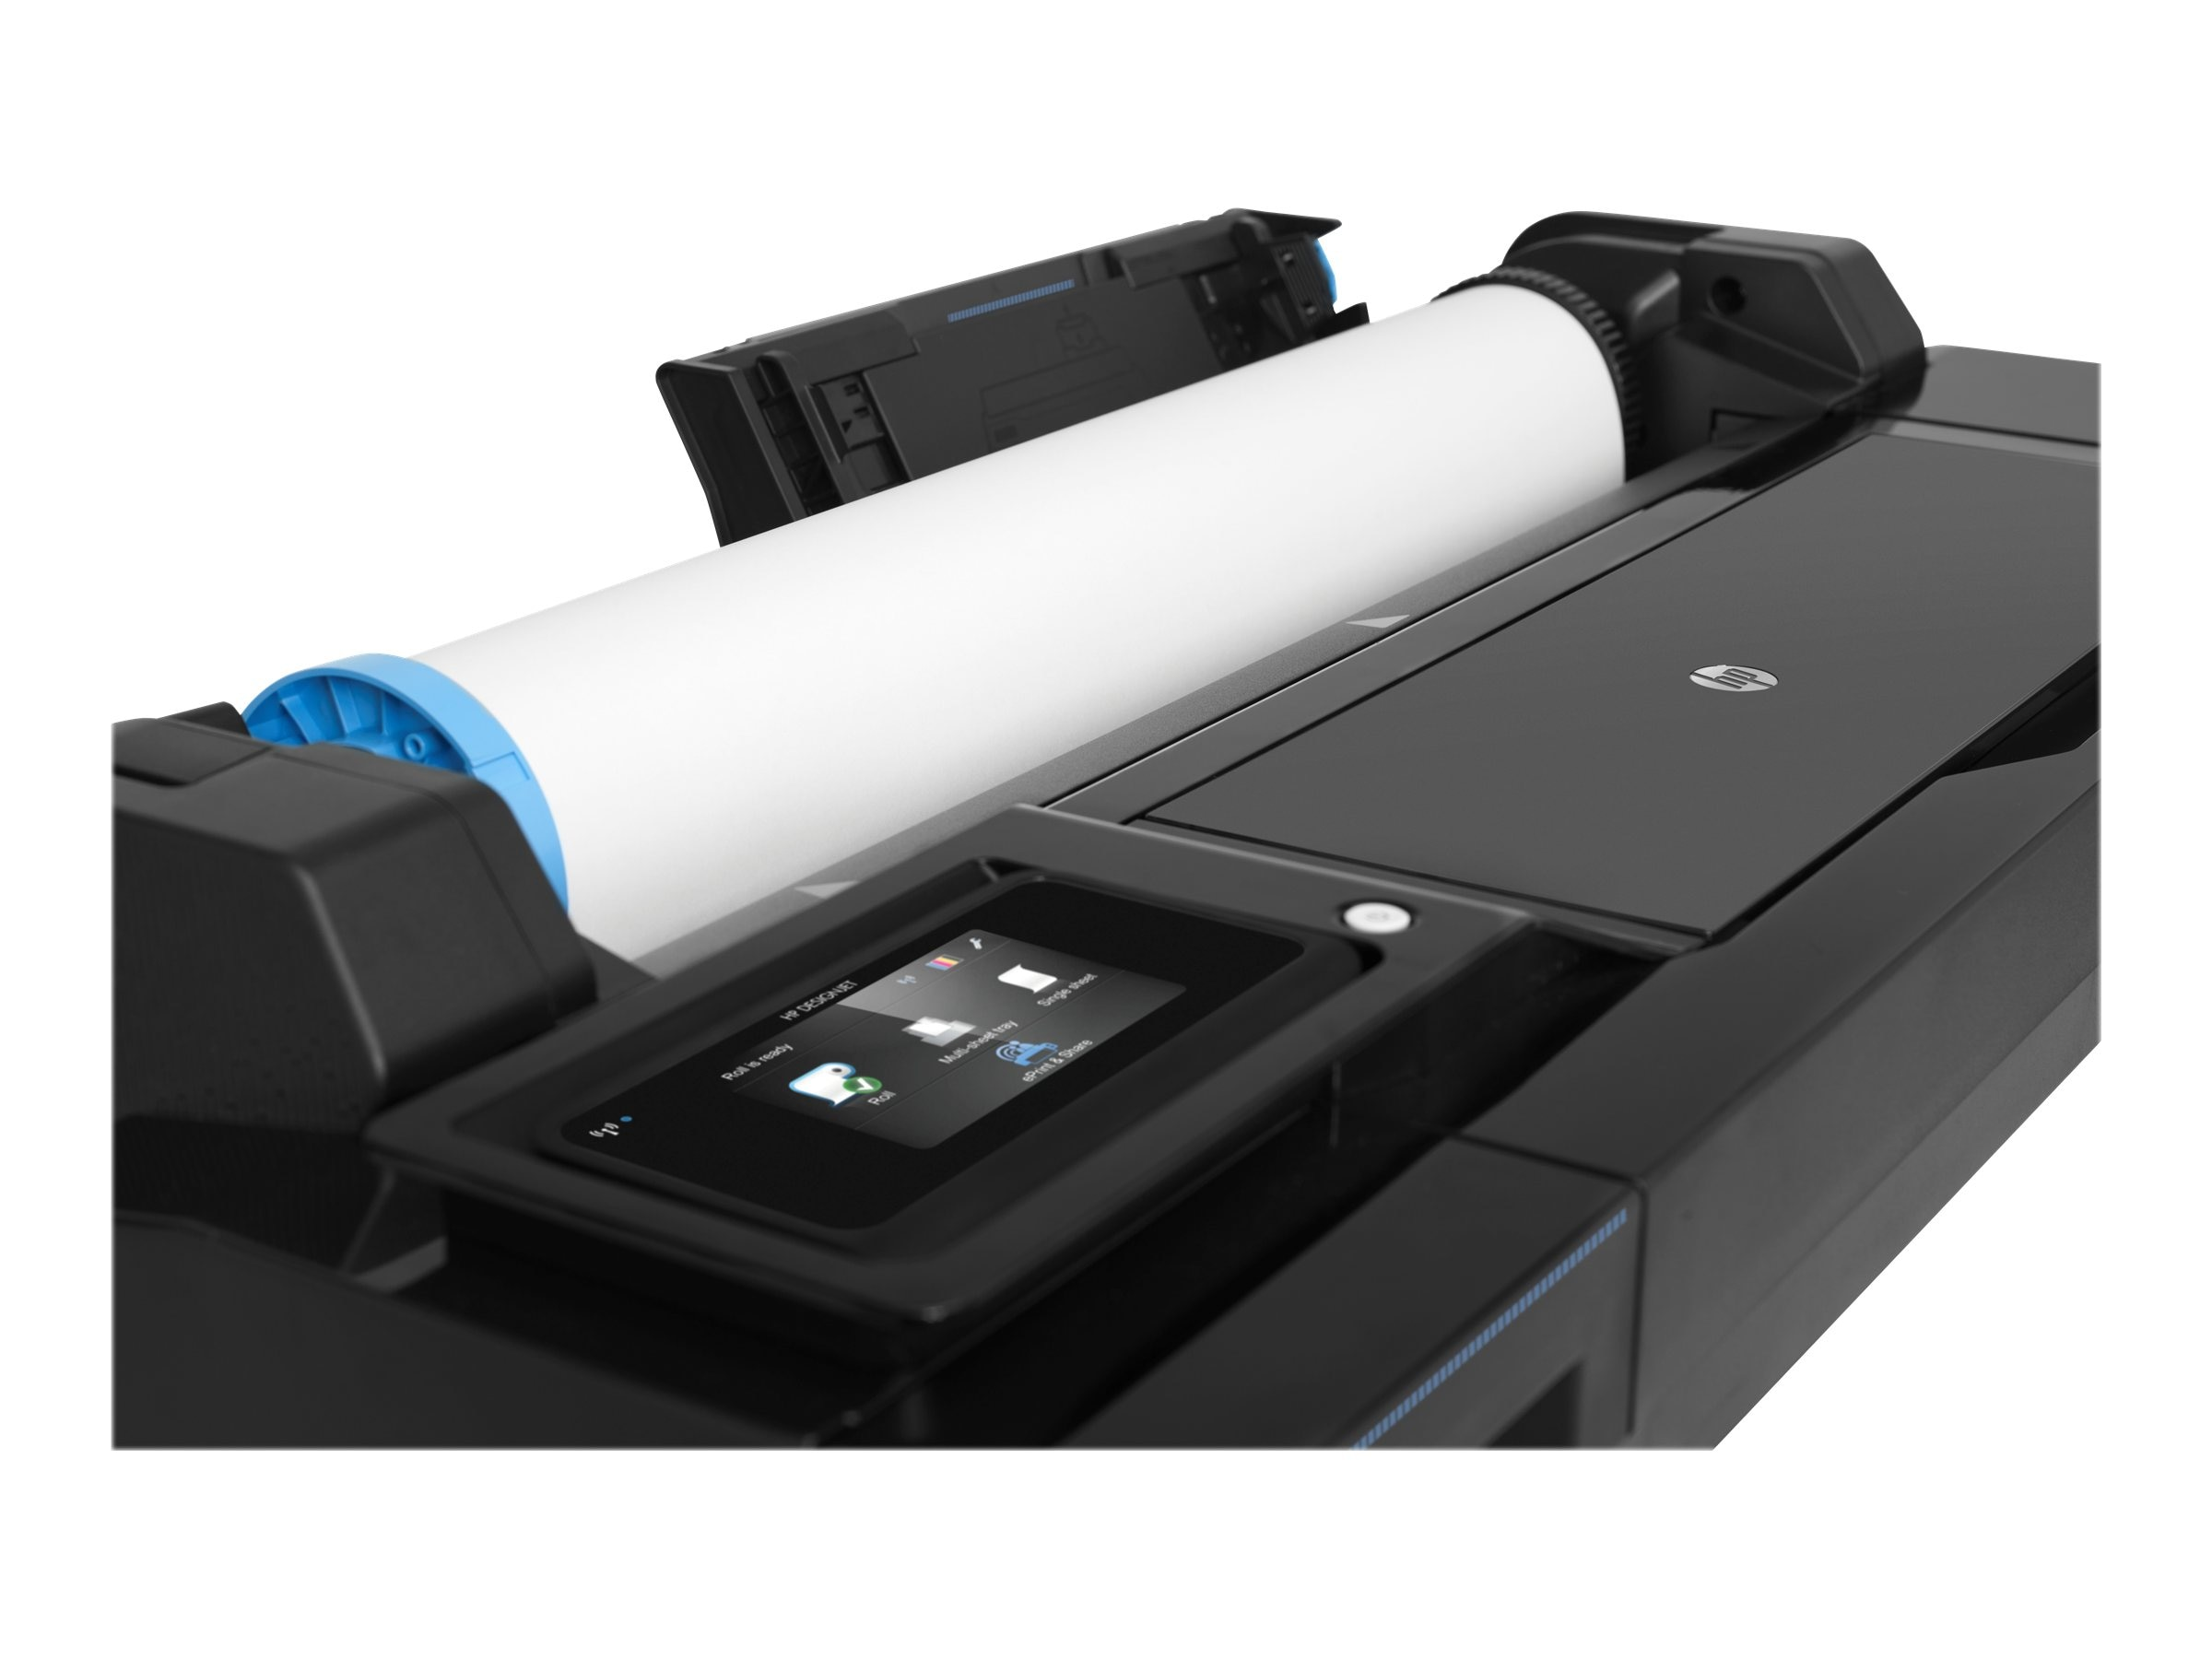 HP Designjet T120 ePrinter ($999 - $100 Instant Rebate = $899 Expires July 31st), CQ891A#B1K